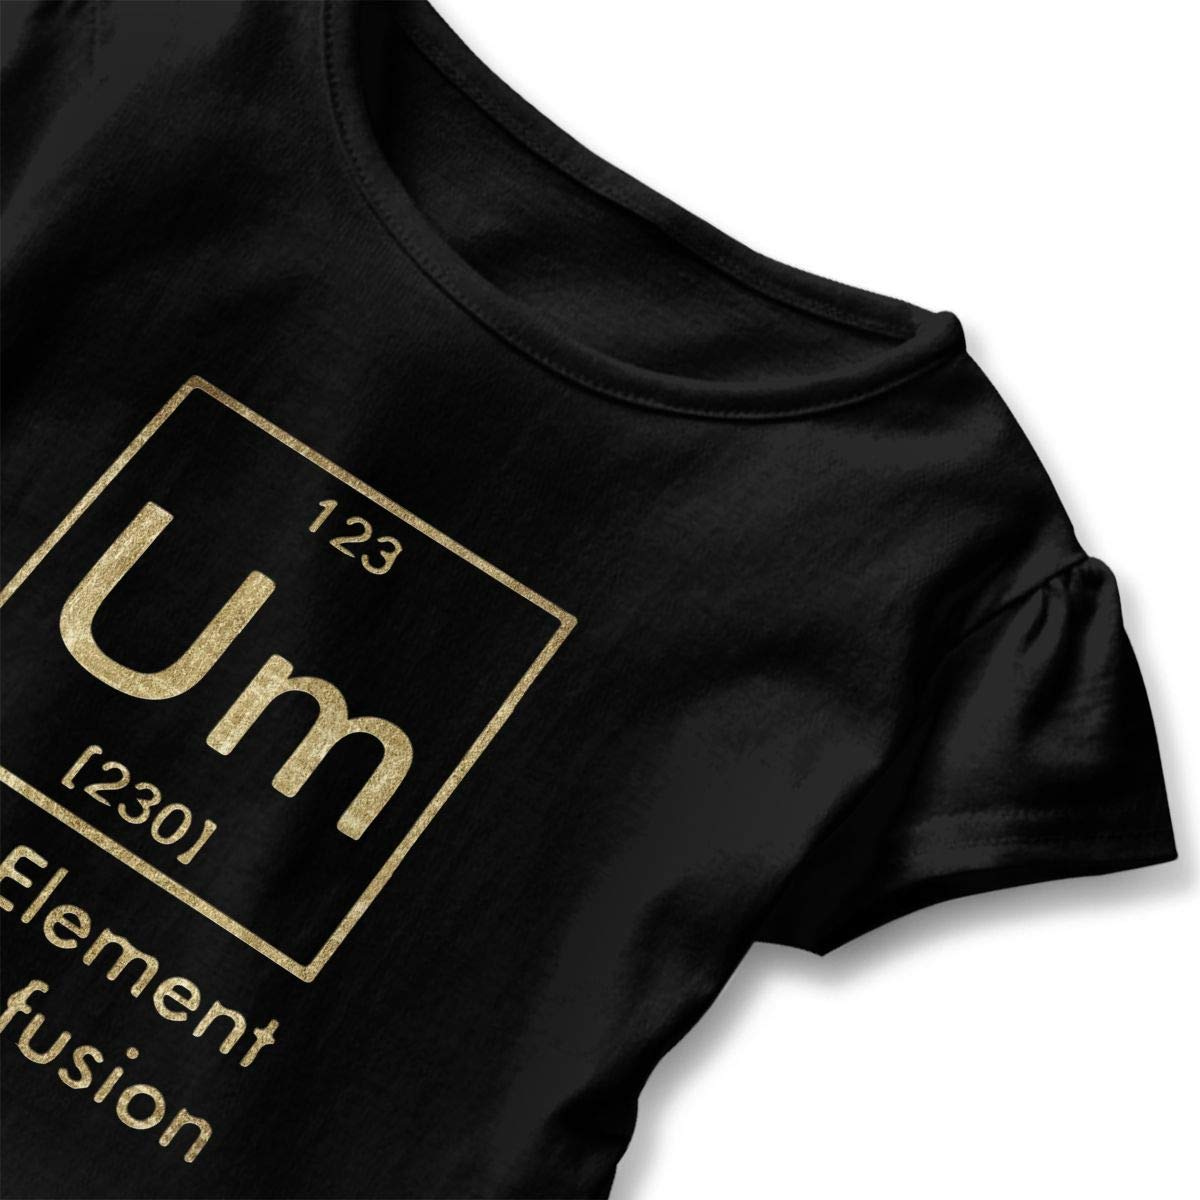 Um The Element of Confusion Funny Chemistry Toddler Baby Girls Short Sleeve Ruffle T-Shirt